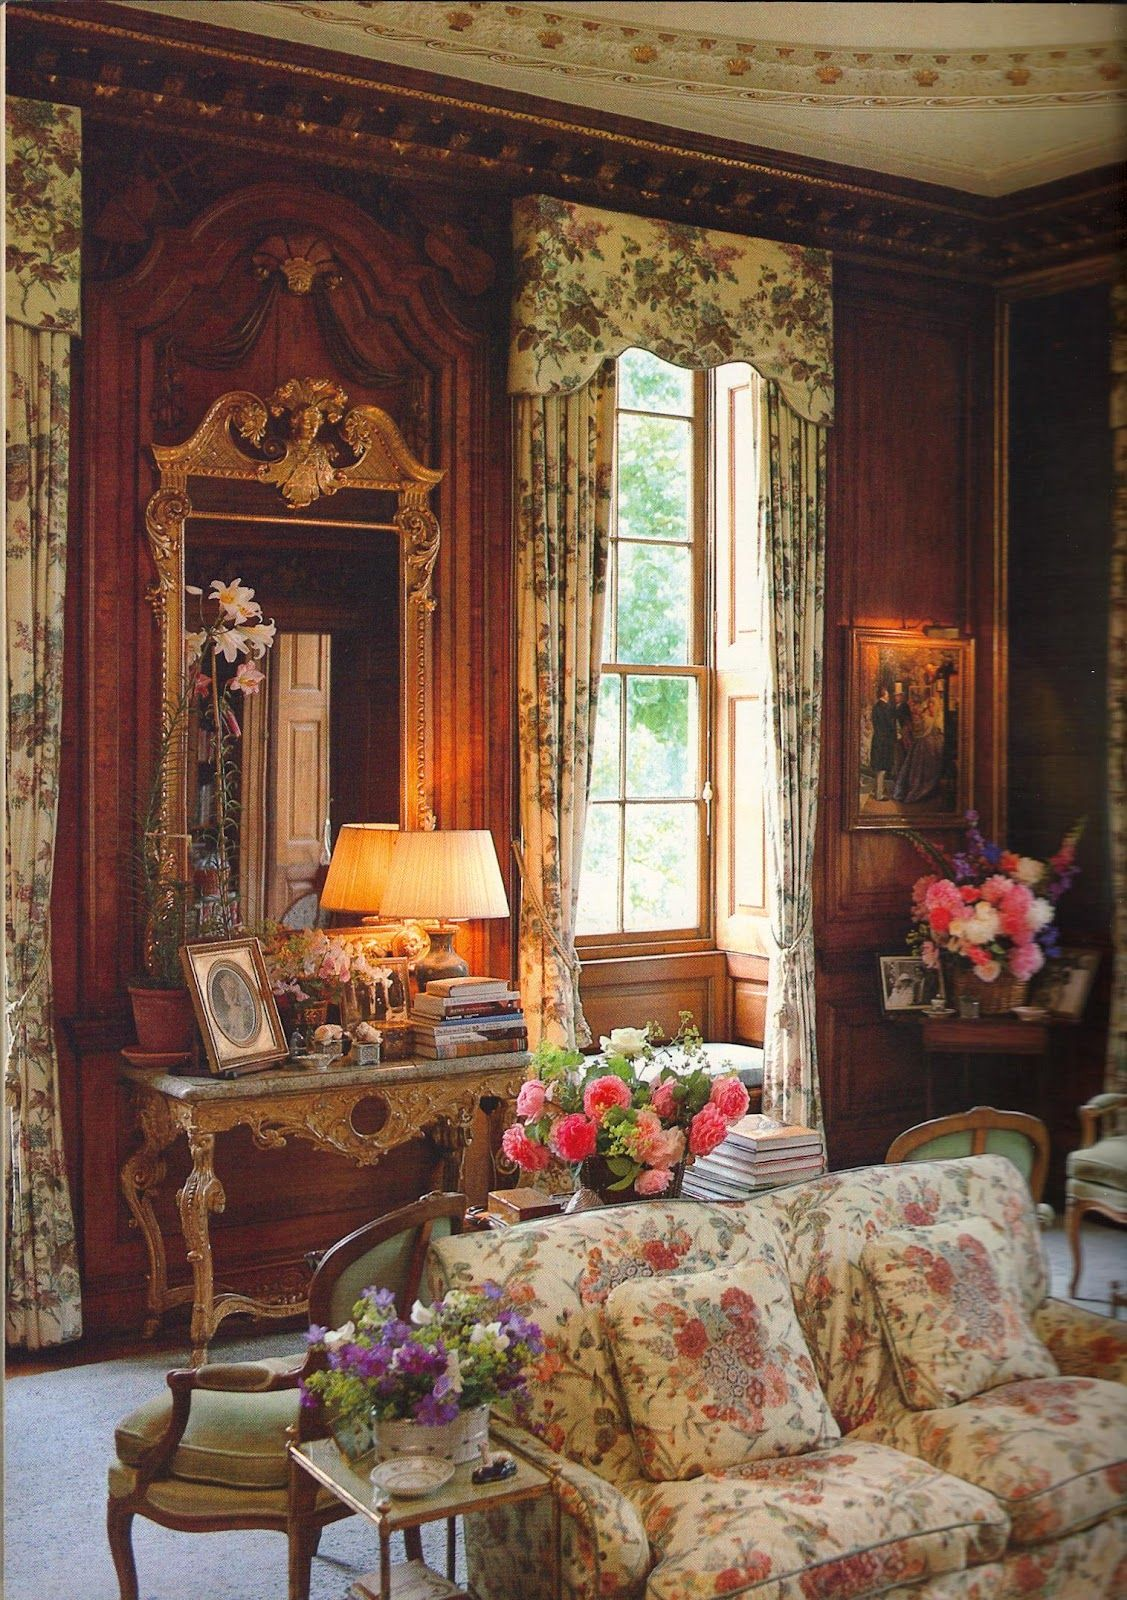 Southern Style Is Closely Linked To Traditional English Decorating AD Devoted An Issue The Country House Specifically Home Of John